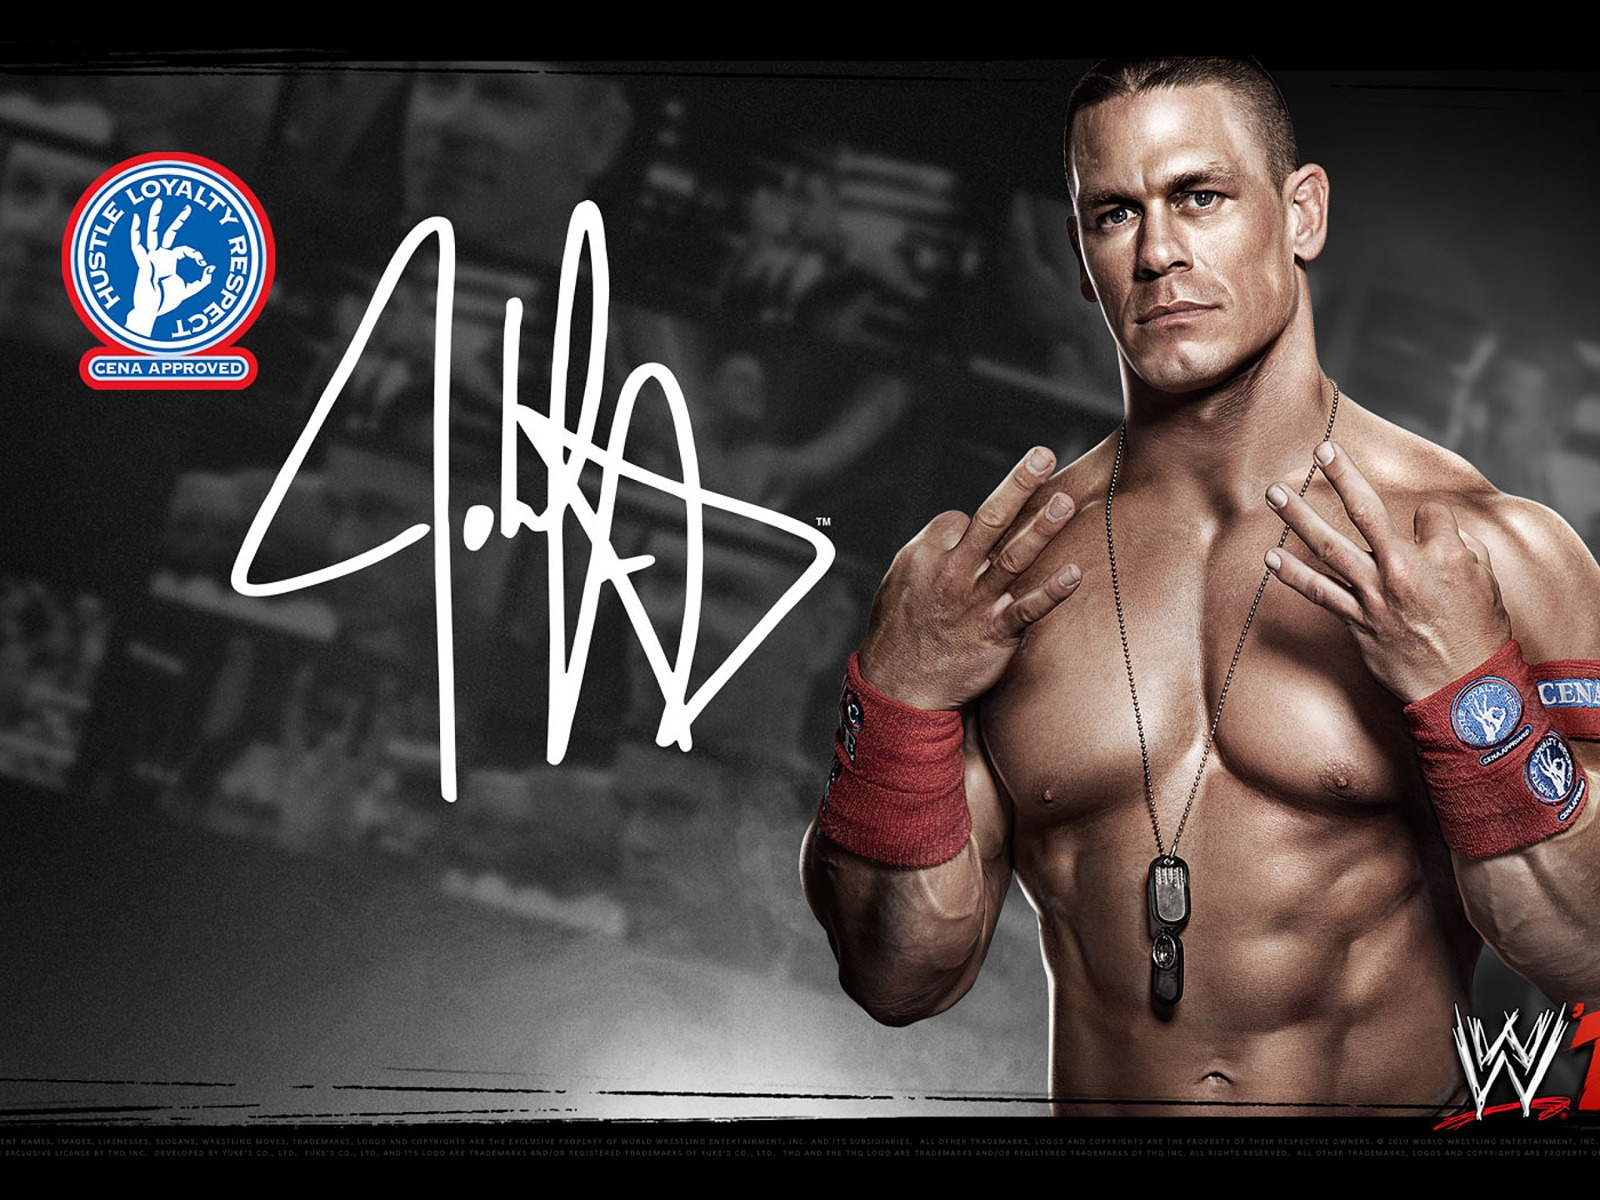 John Cena WWE for 1600 x 1200 resolution